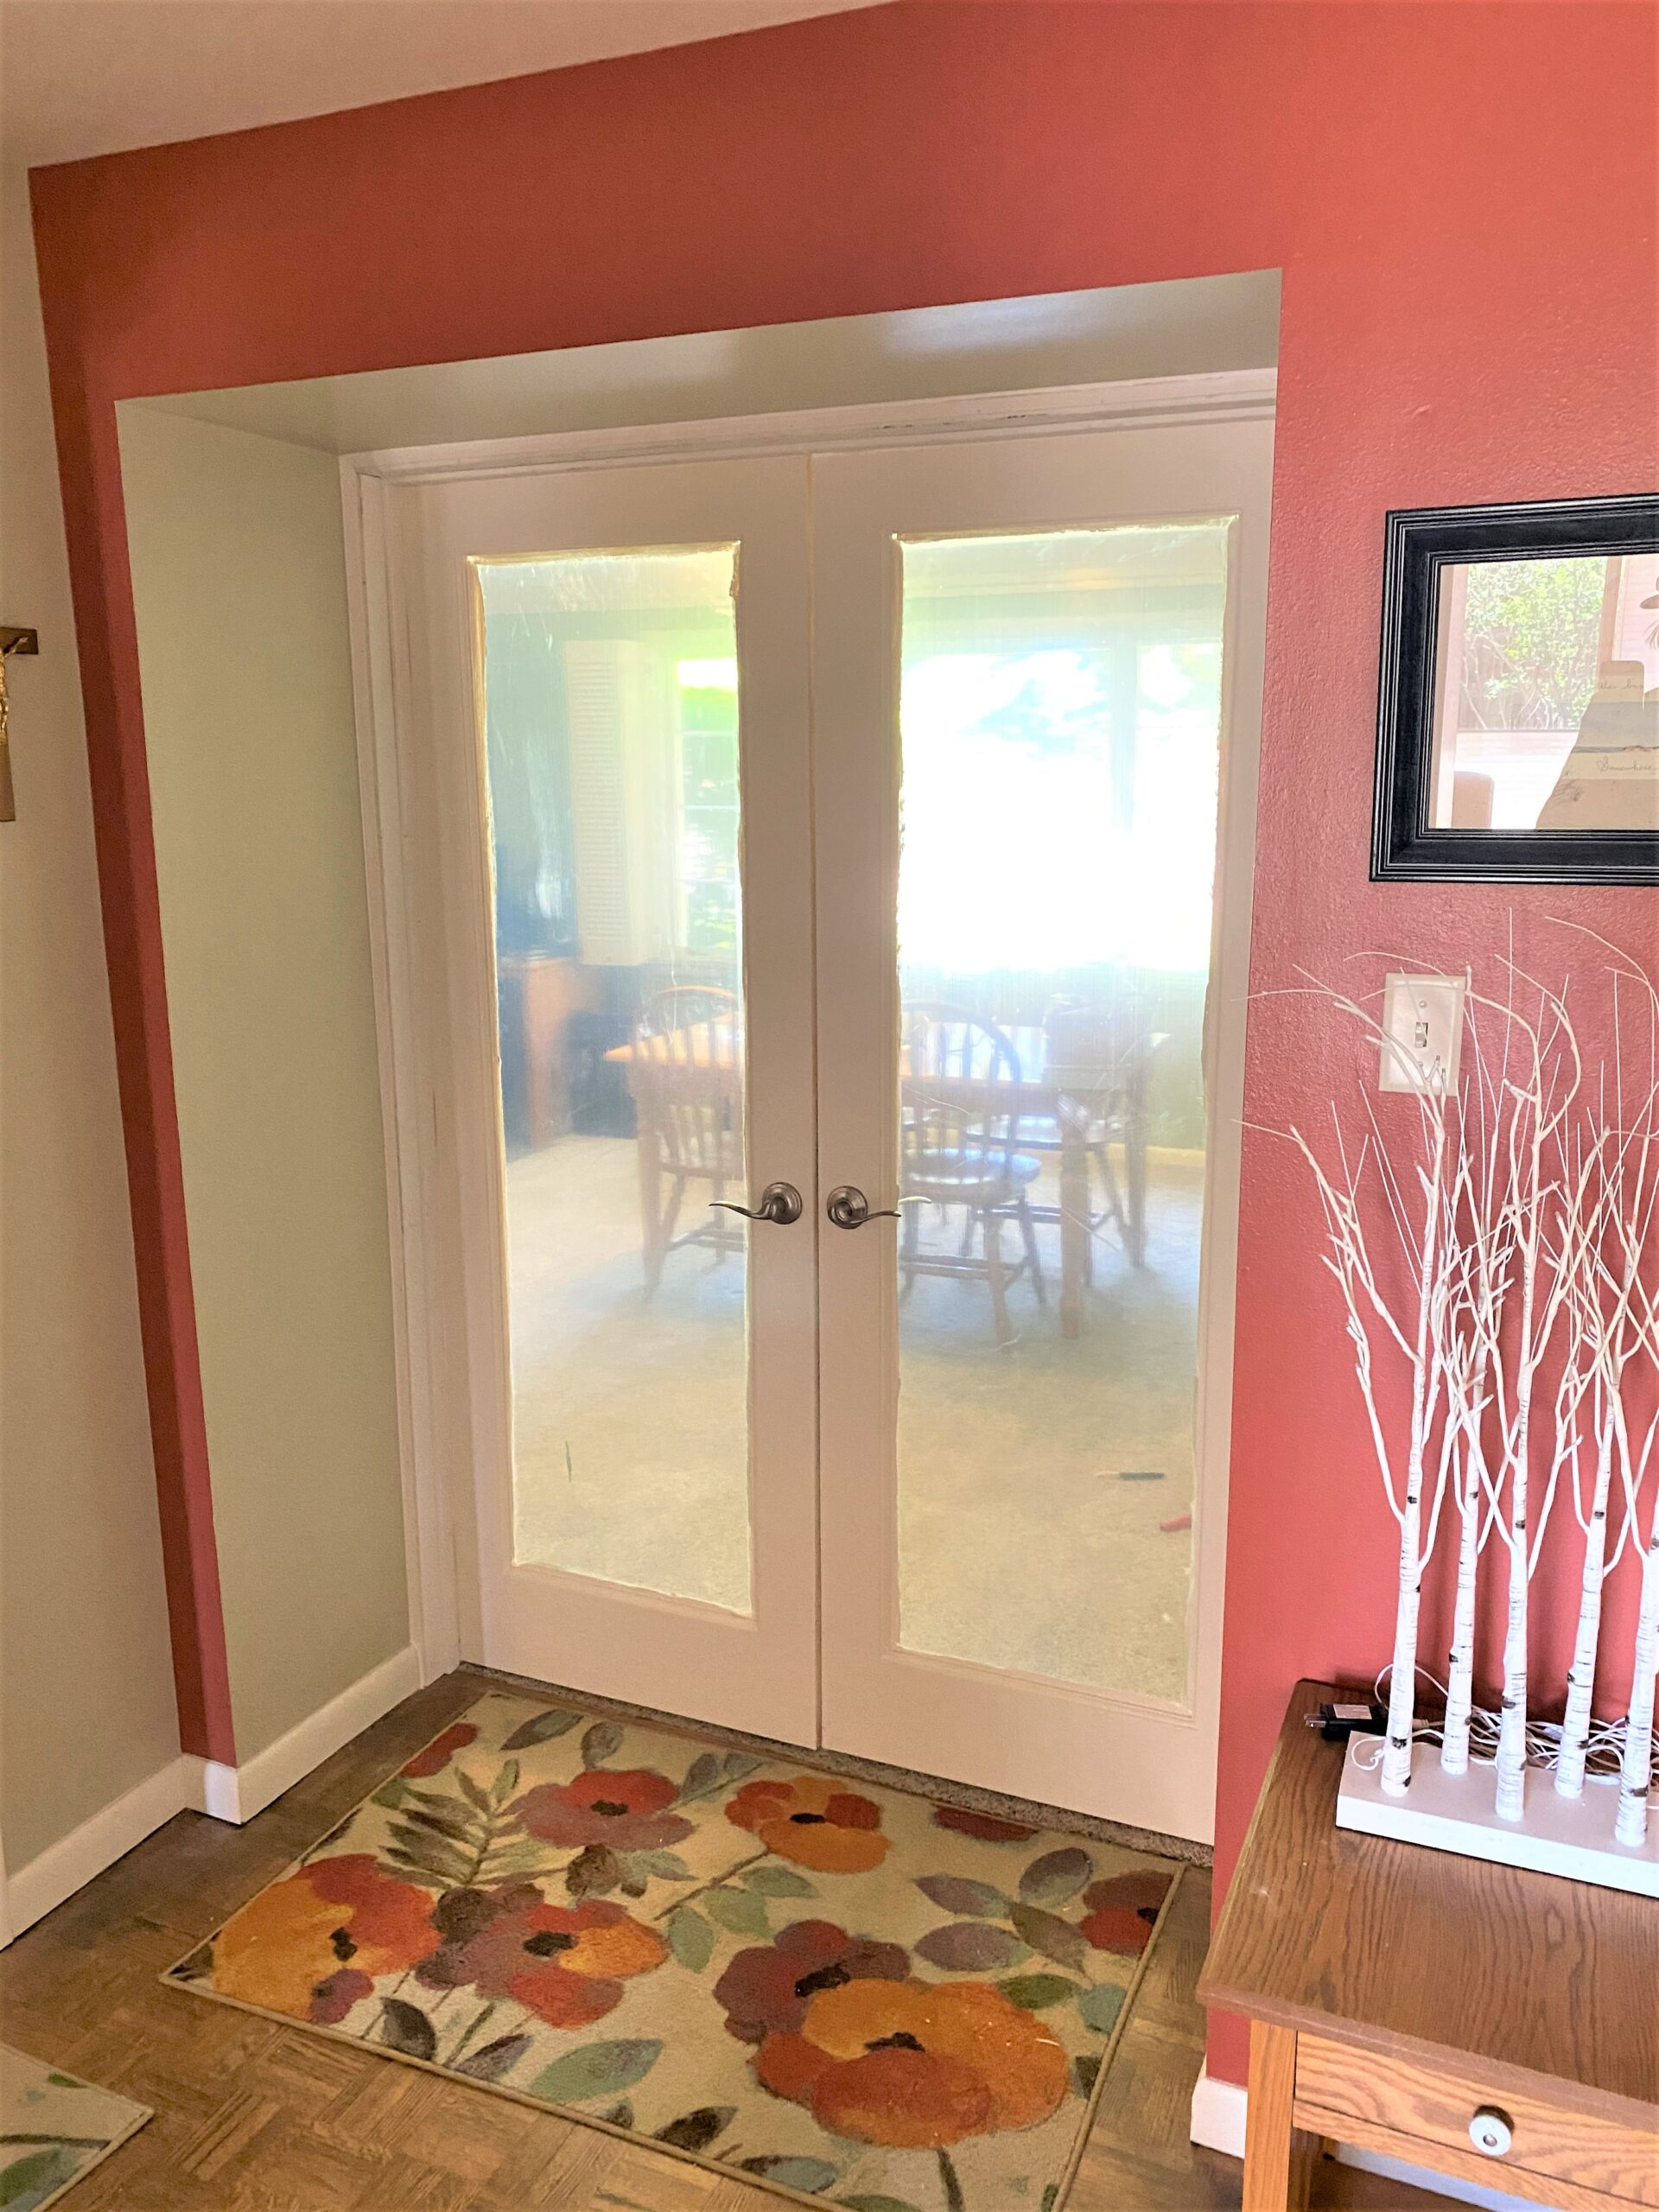 French doors with full pane windows and floral floor mat